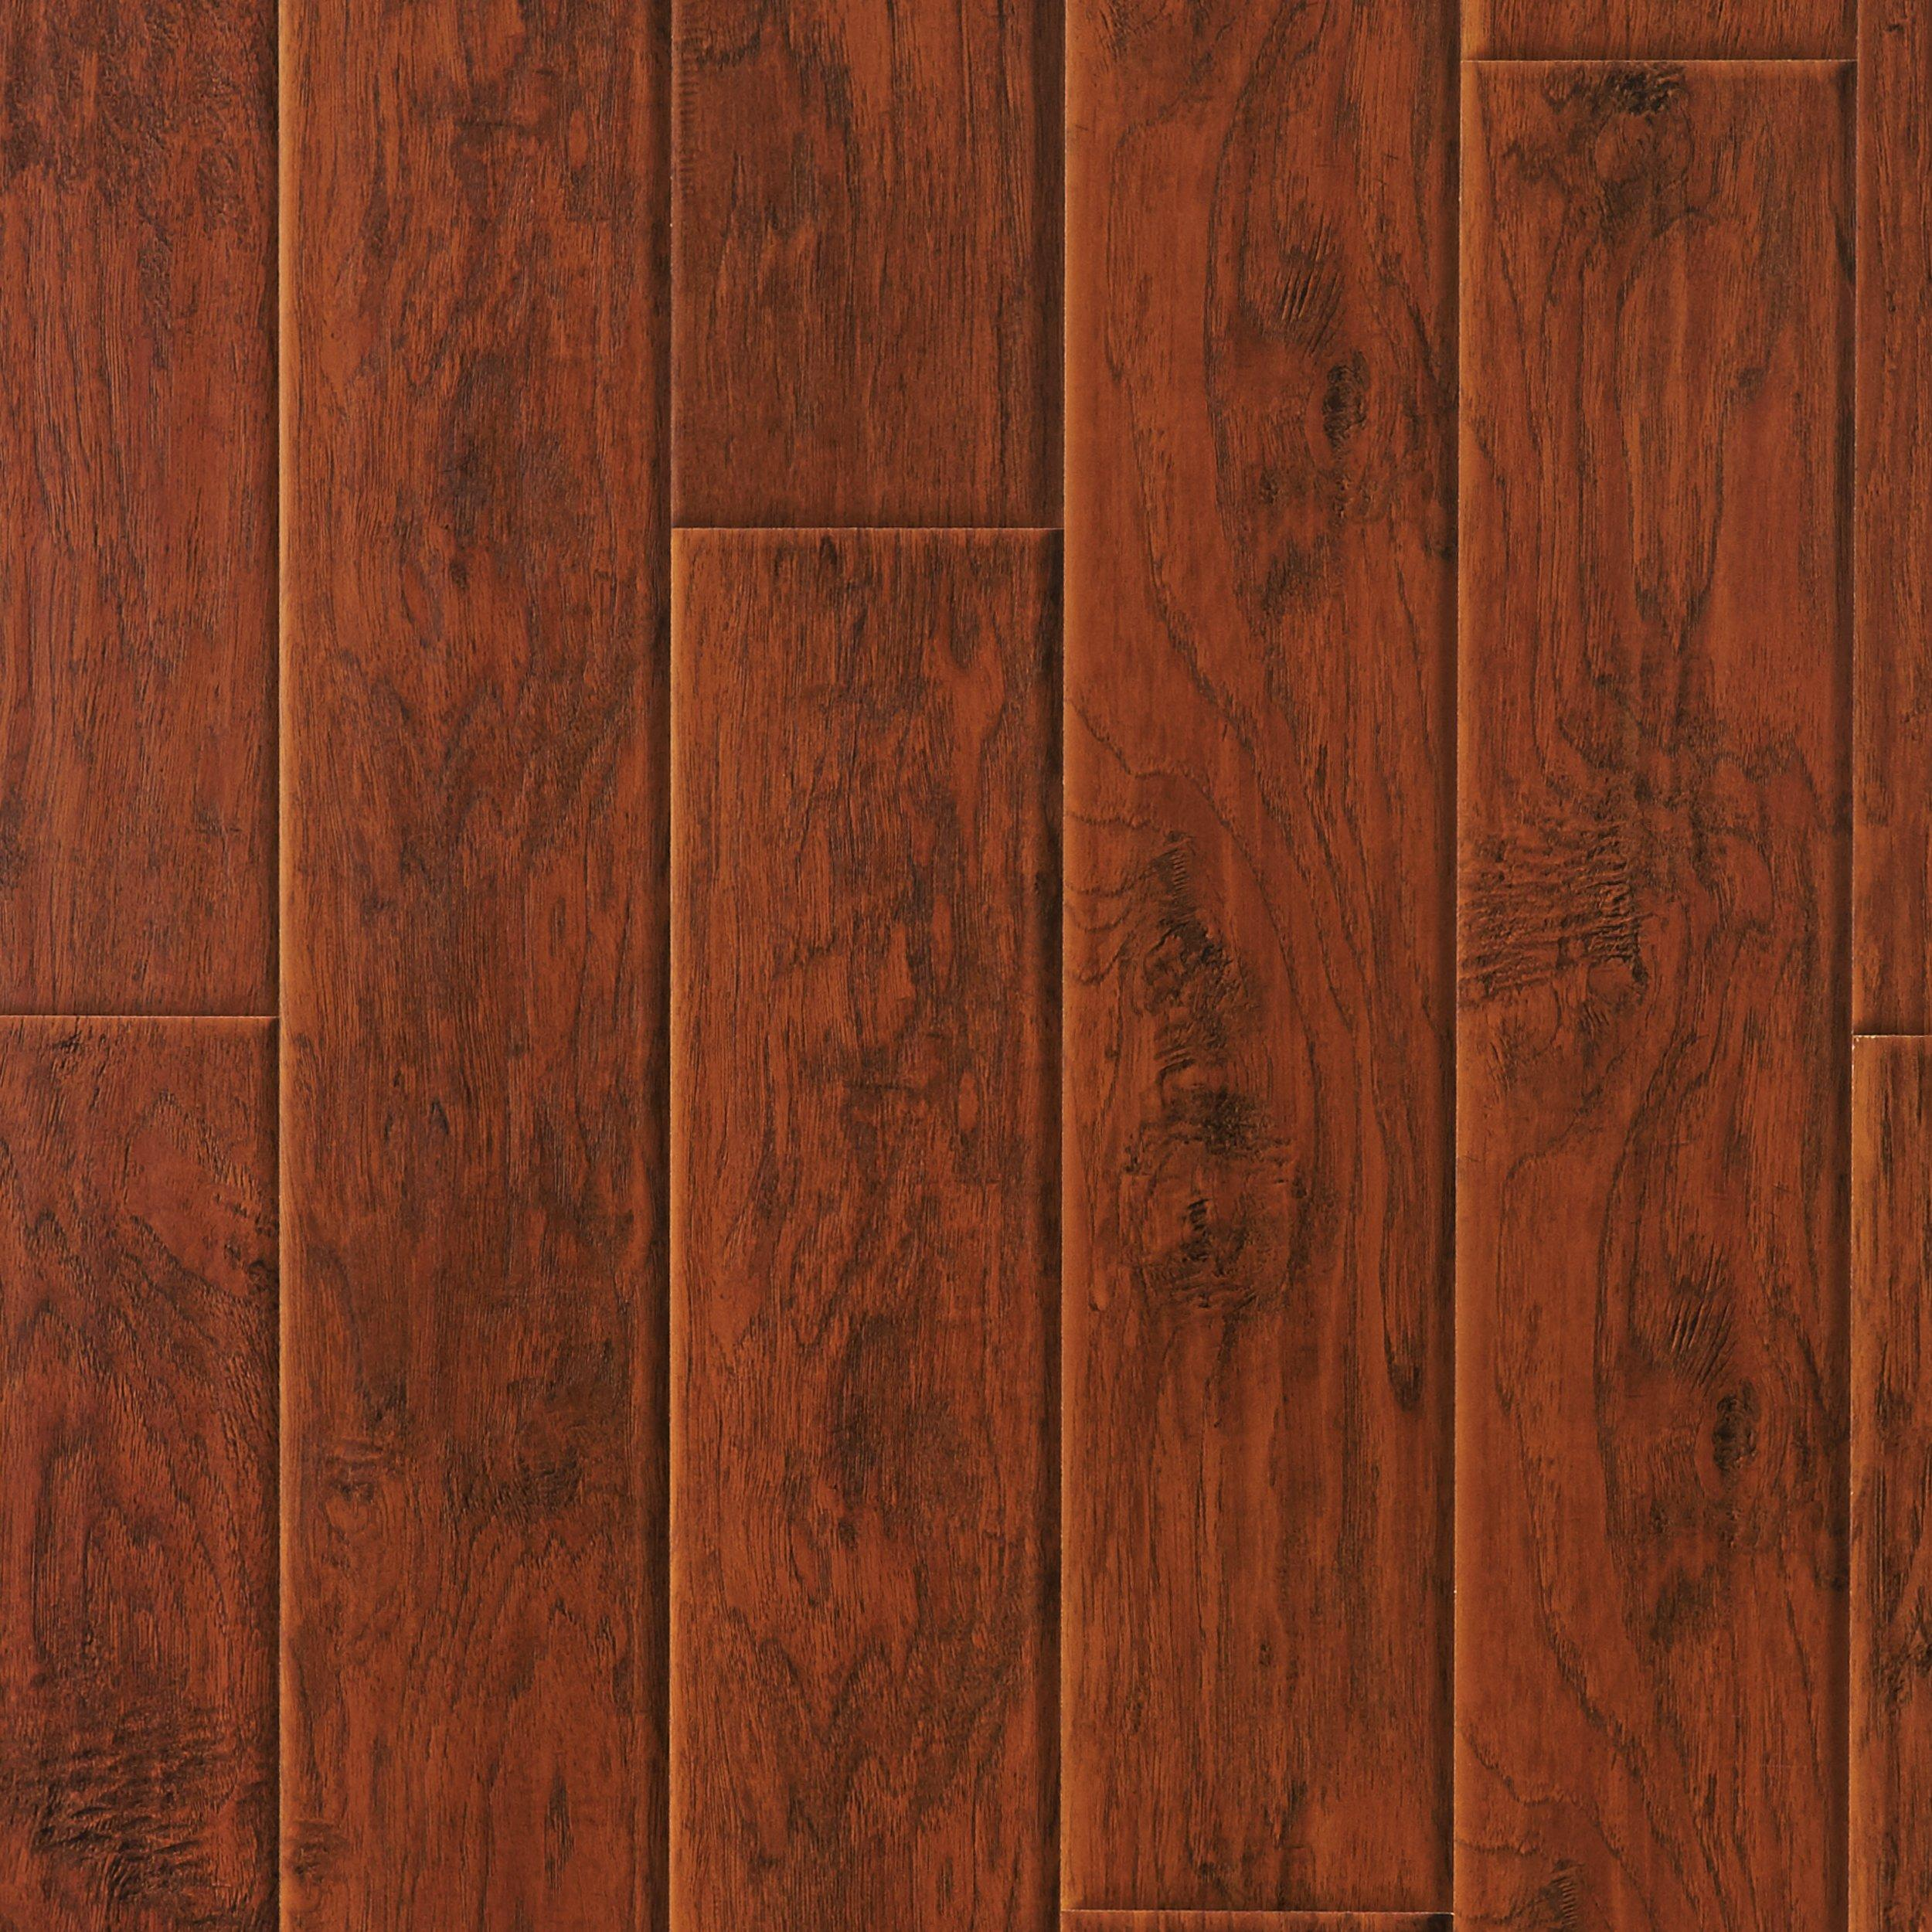 Hampstead Ashland Hickory Hand Scraped Laminate   12mm   100130244 | Floor  And Decor